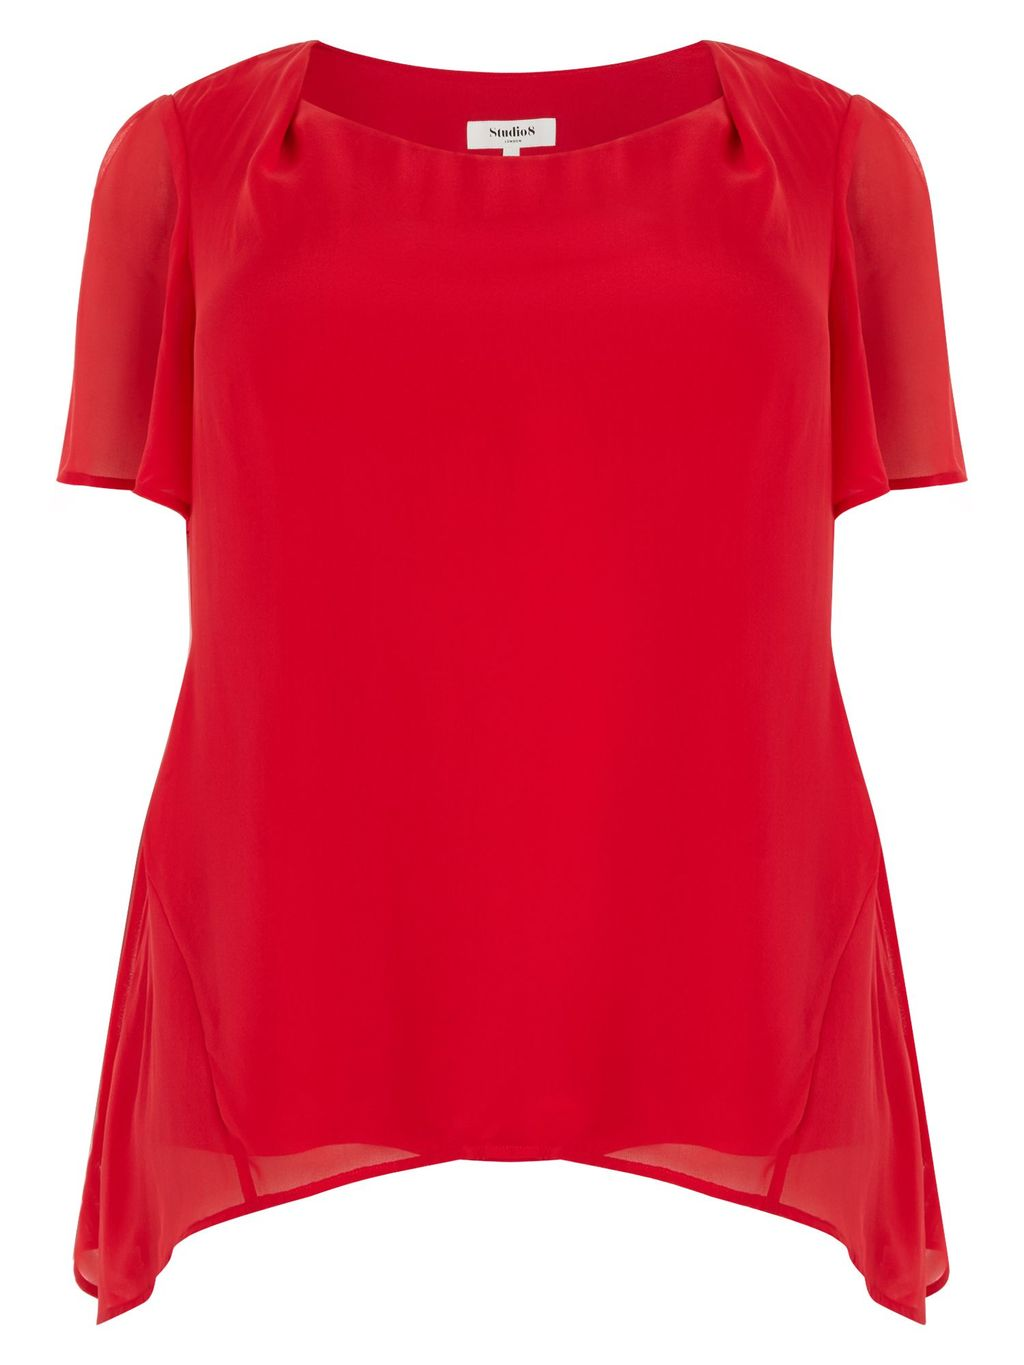 Charlie Tunic, Red - neckline: round neck; pattern: plain; length: below the bottom; predominant colour: true red; occasions: evening; style: top; fibres: silk - 100%; fit: loose; sleeve length: short sleeve; sleeve style: standard; texture group: silky - light; pattern type: fabric; pattern size: standard; season: a/w 2015; wardrobe: event